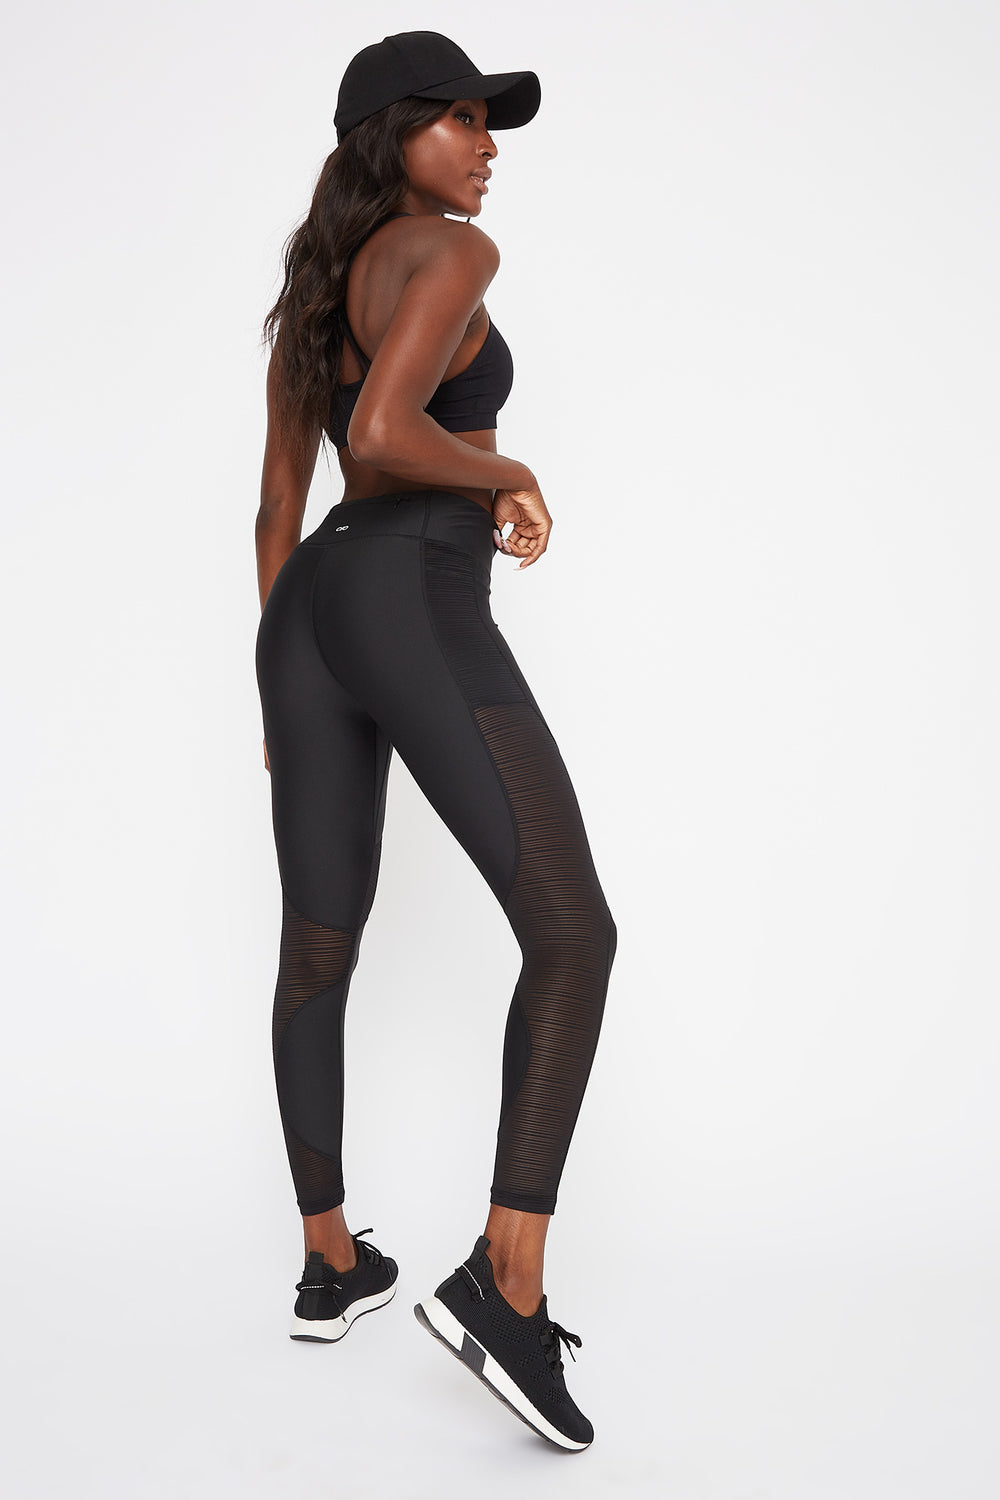 Infinite High-Rise Sheer Mesh Active Legging Black